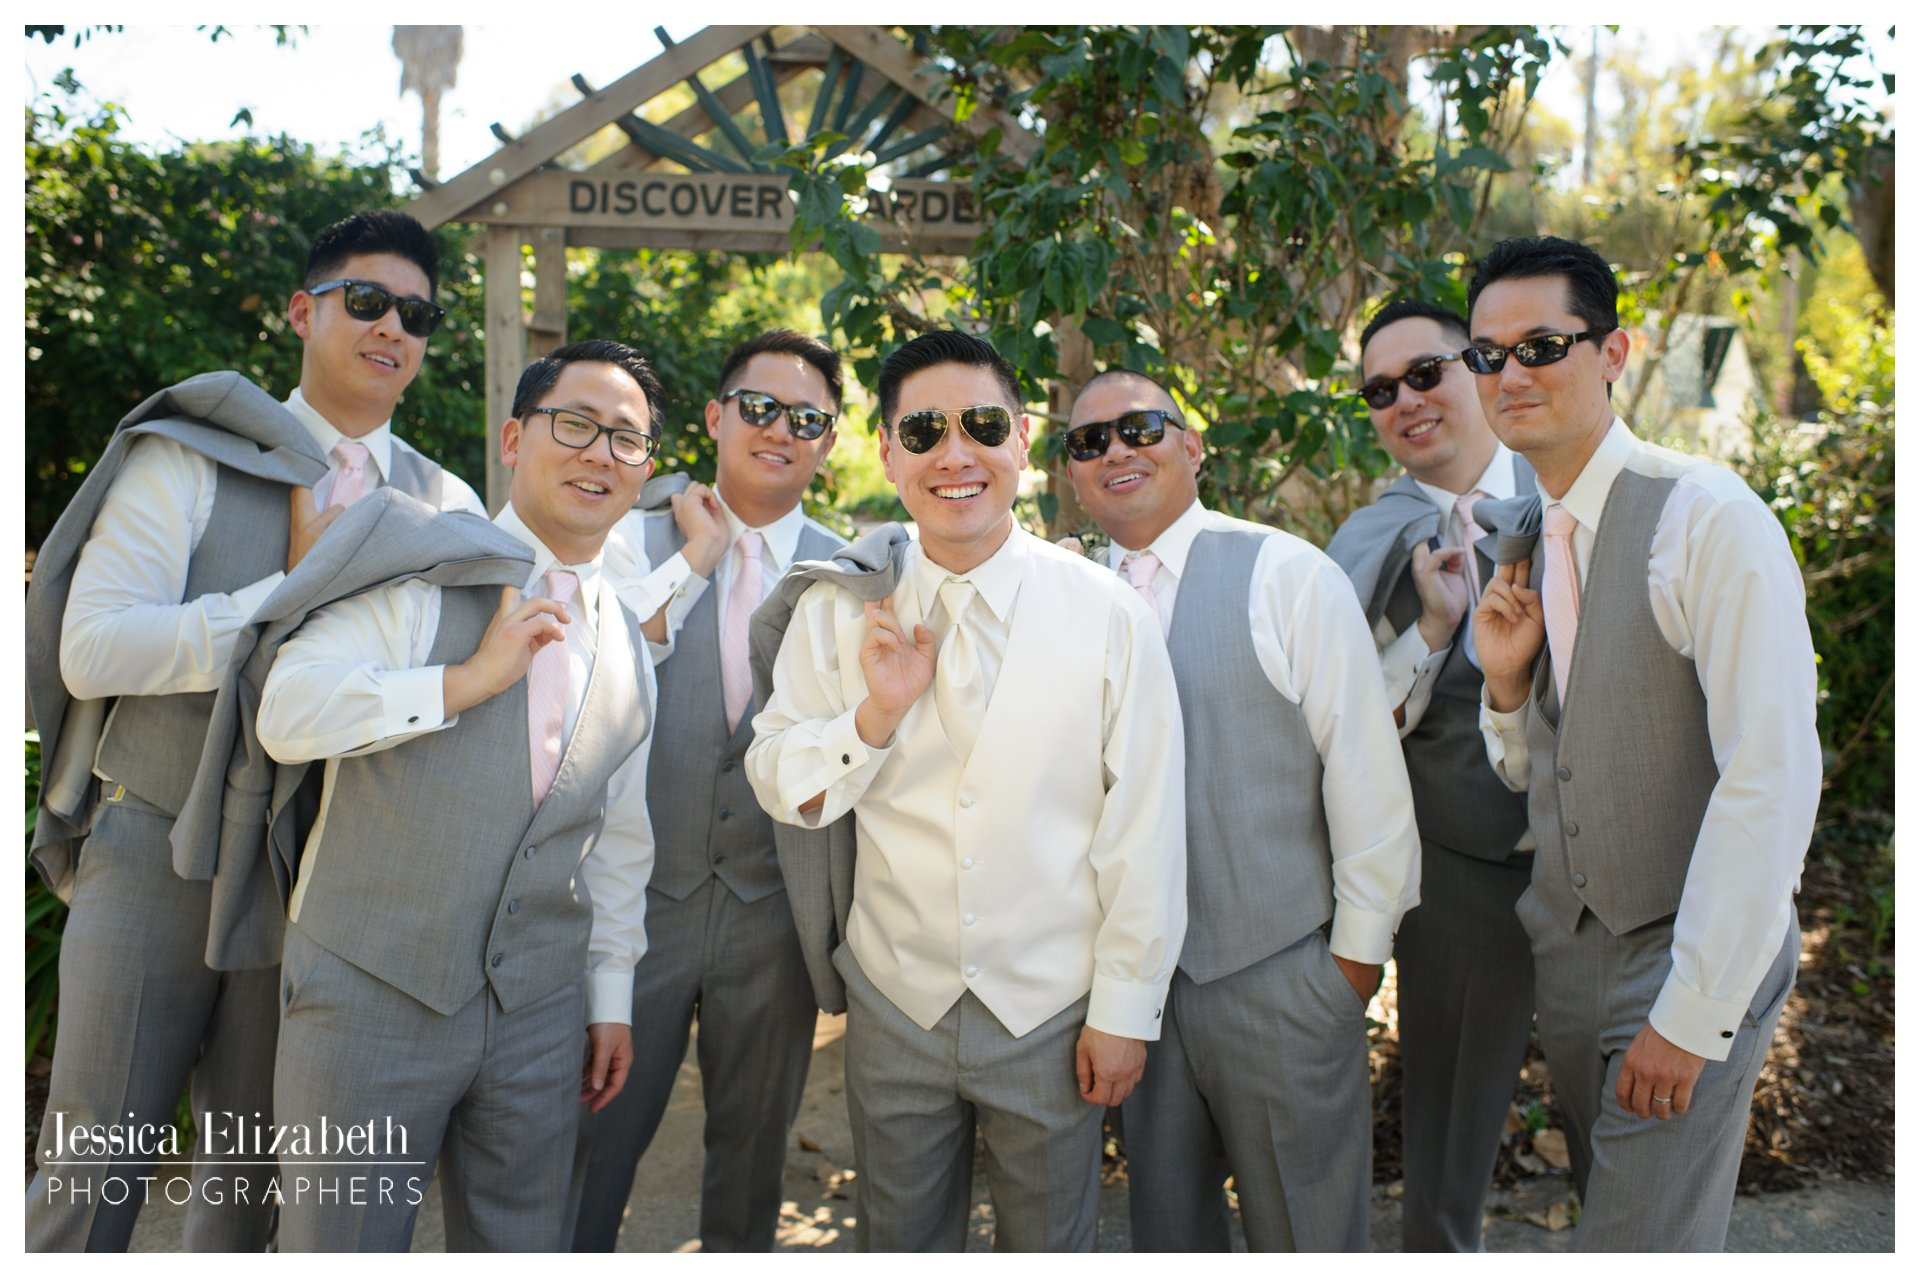 04-South Coast Botanic Garden Palos Verdes Wedding Photography by Jessica Elizabeth